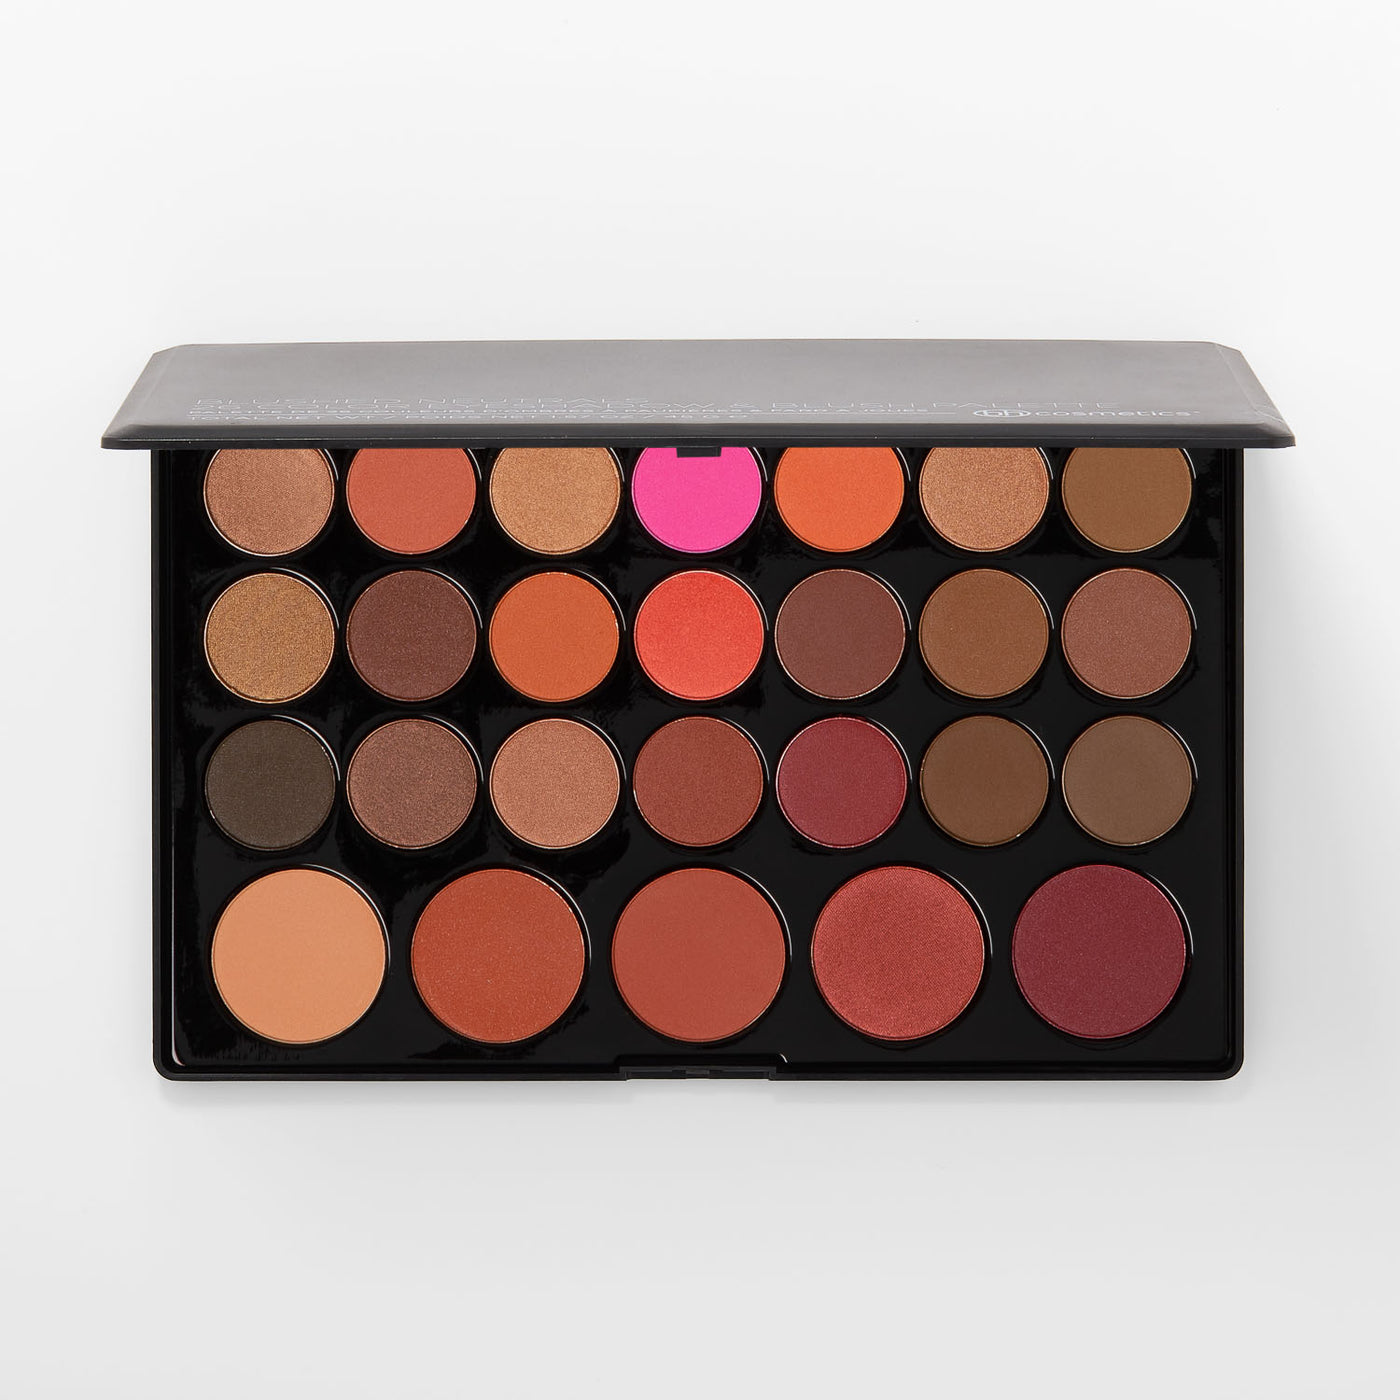 Nude Eyeshadow & Blush Palette | 26 Color Makeup Palette - BH Cosmetics